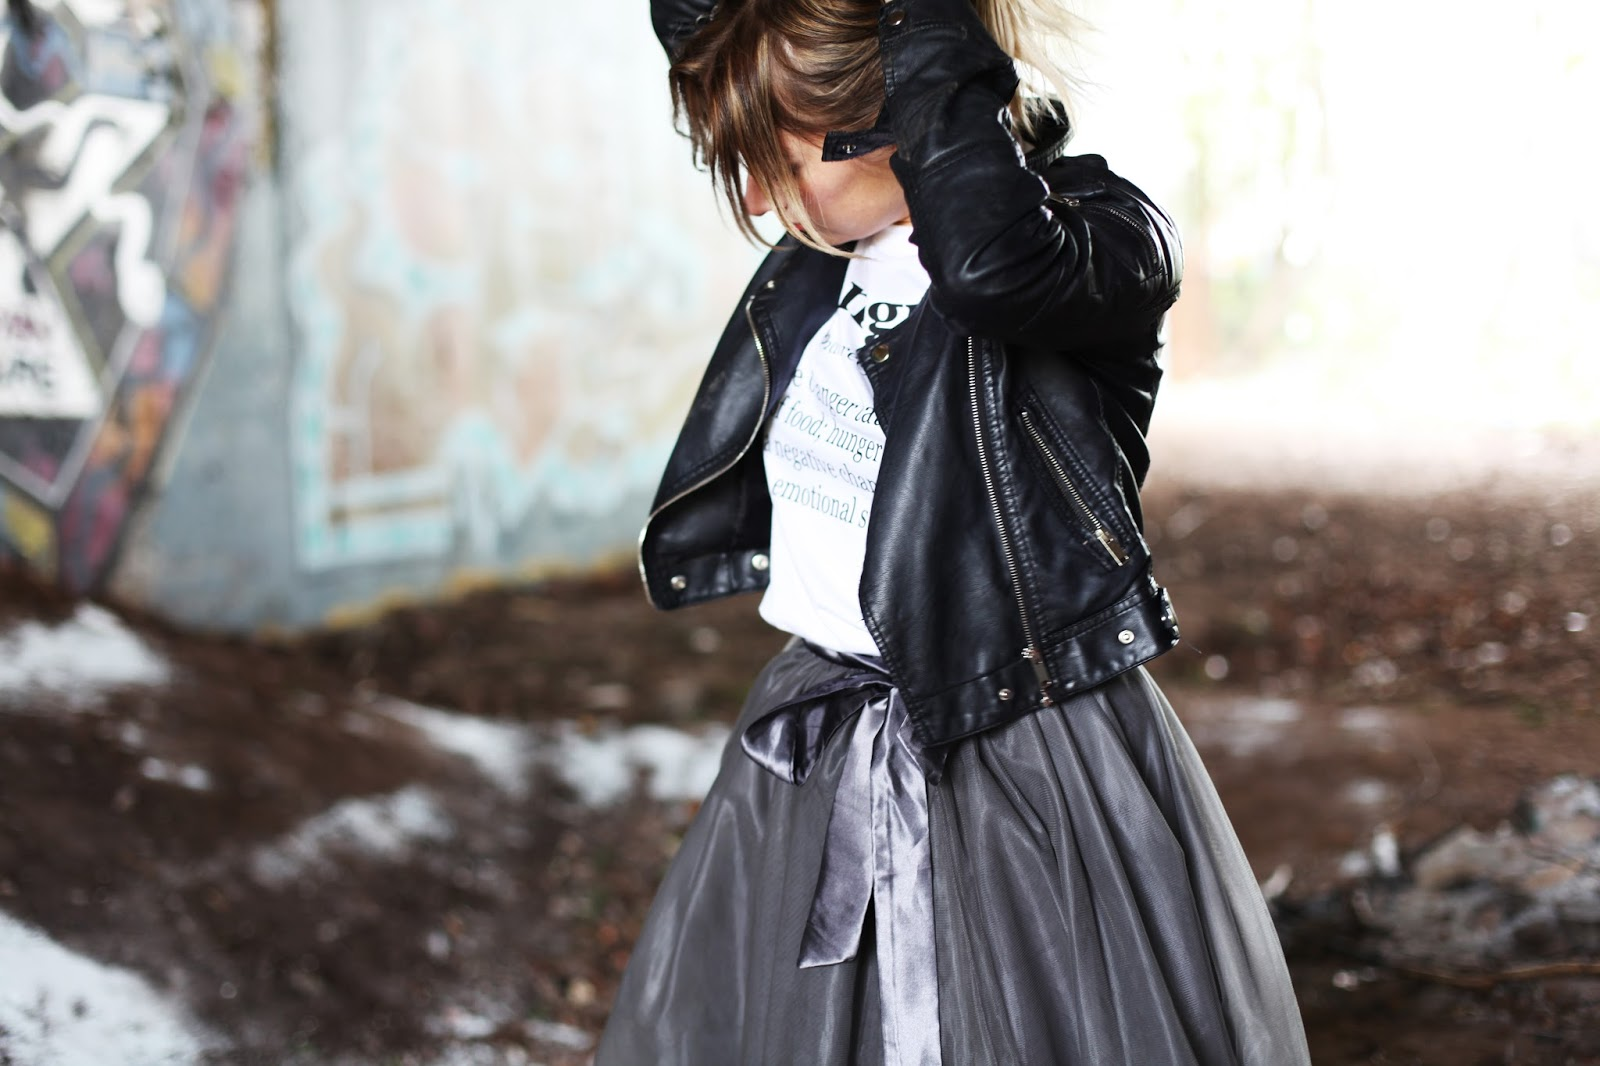 1217154e5a80be ... all means a tutu doesn't mean it has to be for a special occasion, I  loved wearing it with my trainers, Cordelia Hangry tshirt and leather  jacket for a ...